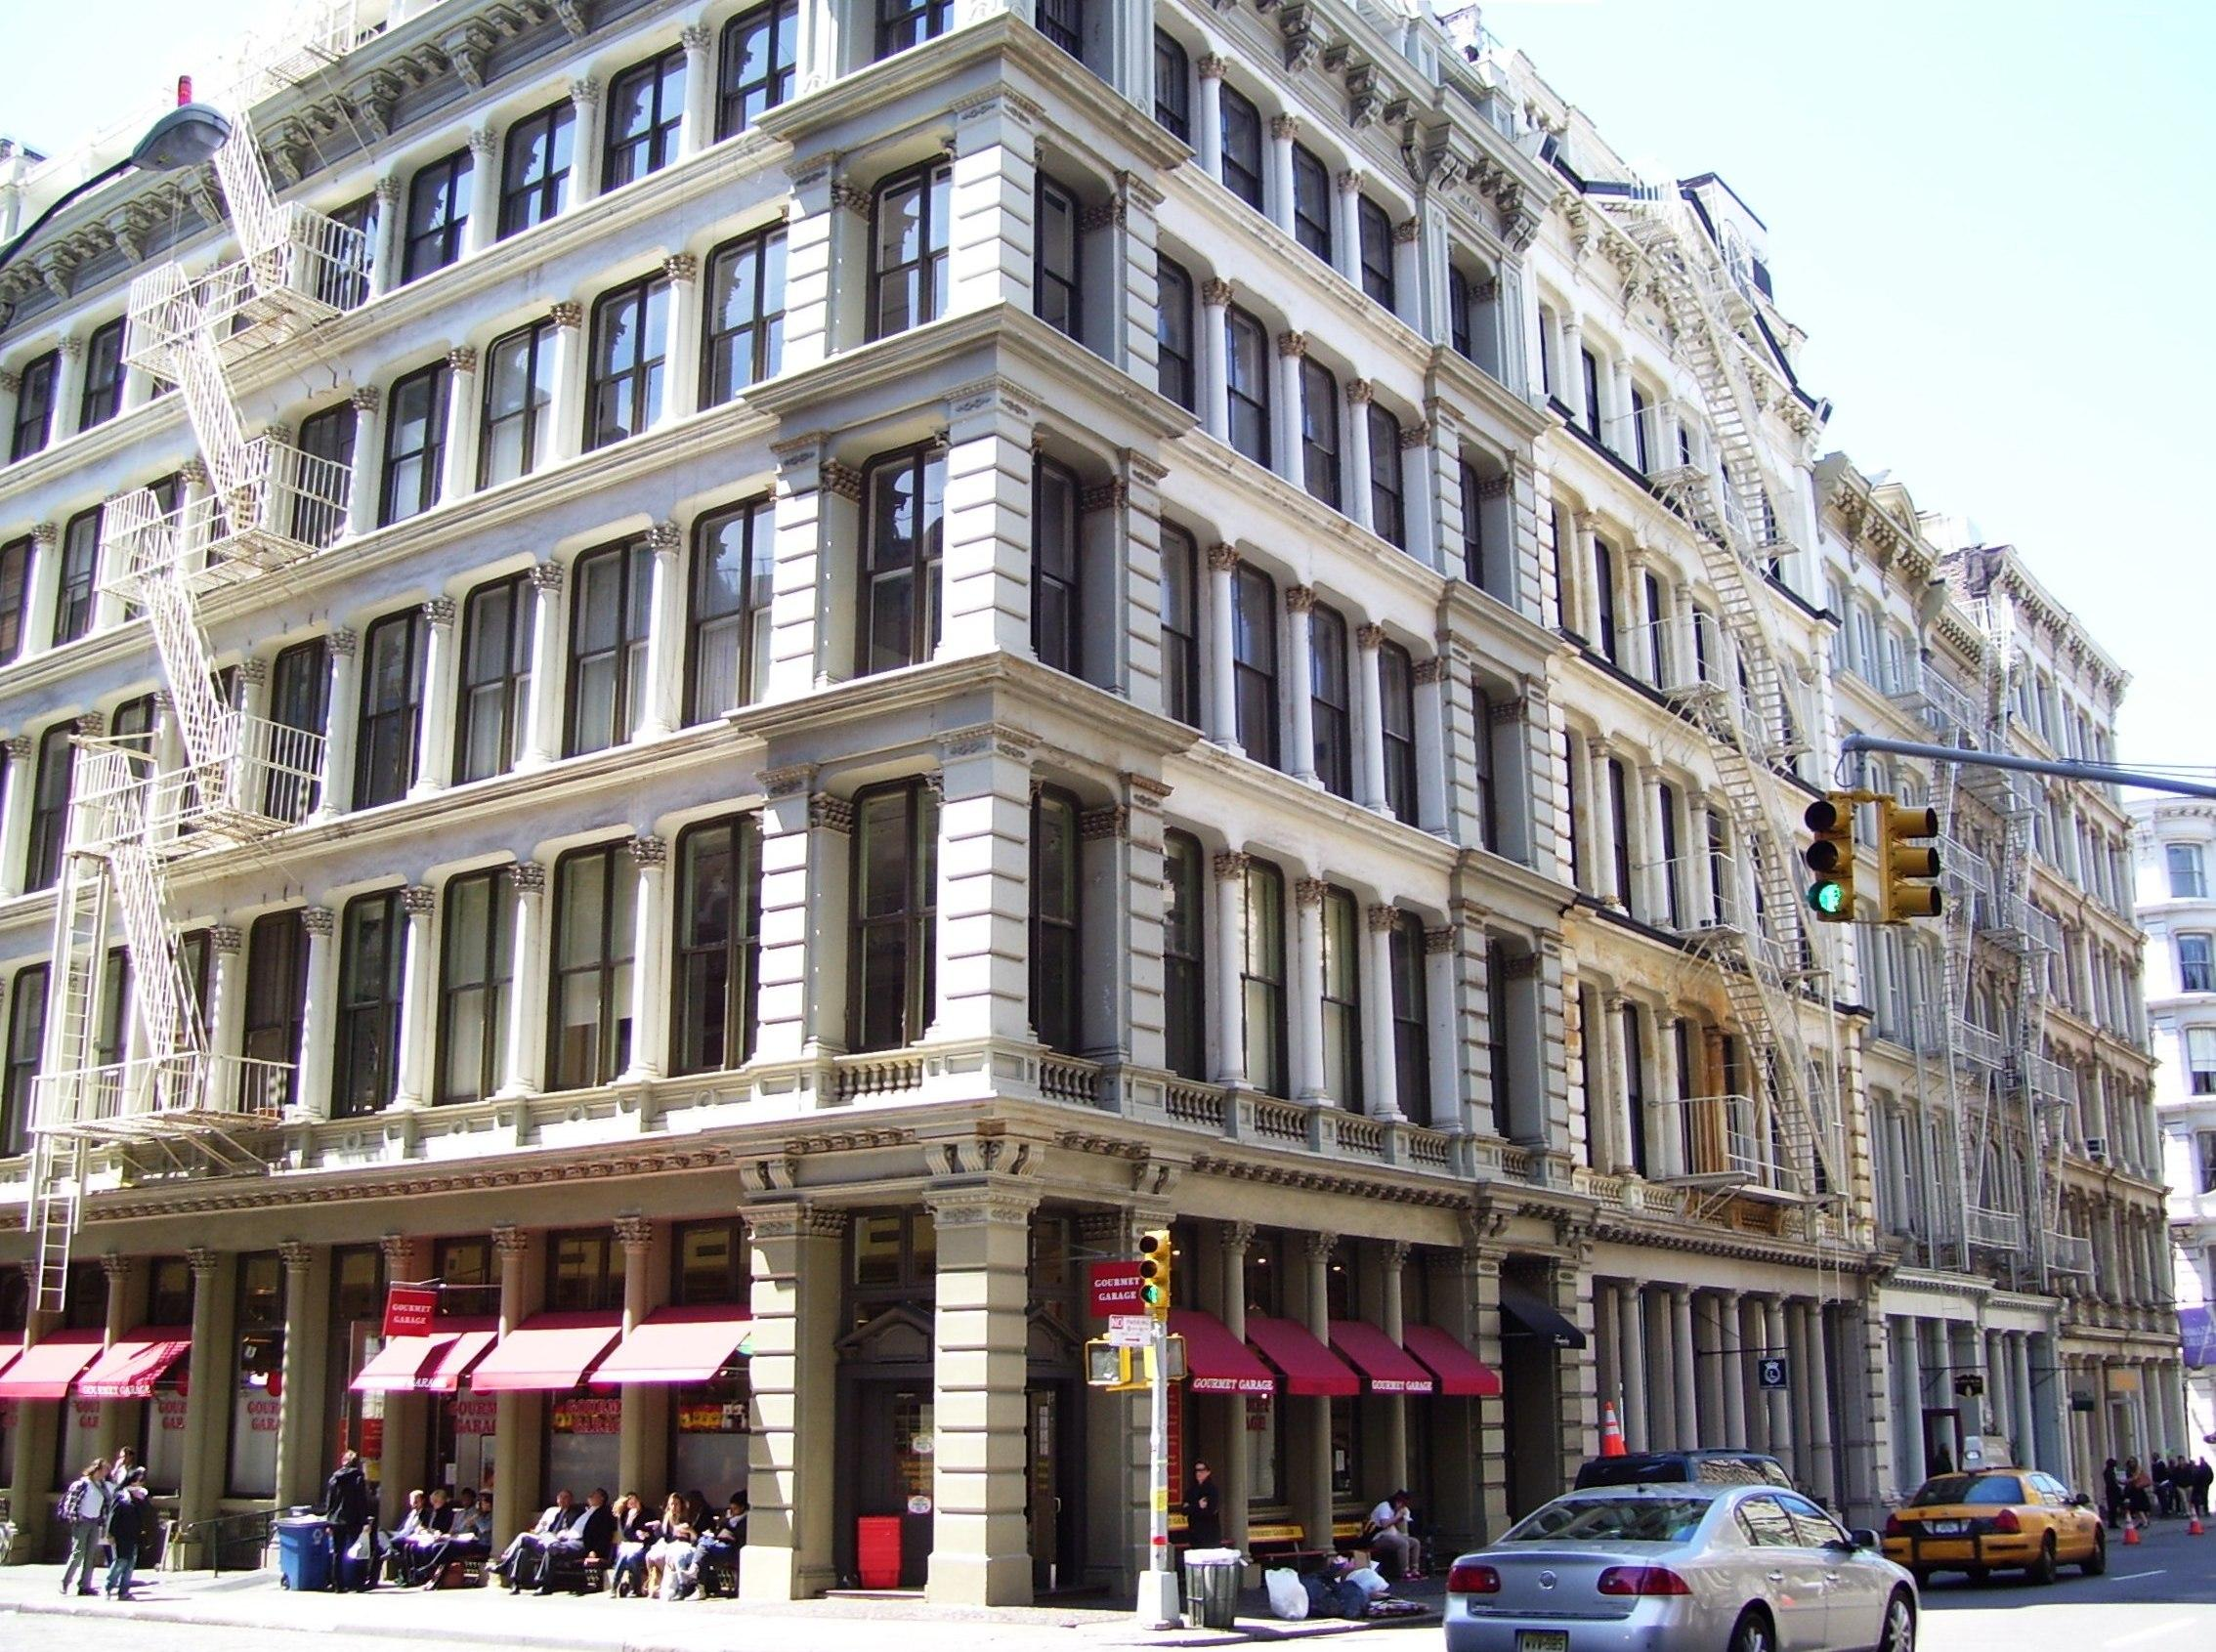 File:453-467 Broome Street.jpg - Wikimedia Commons